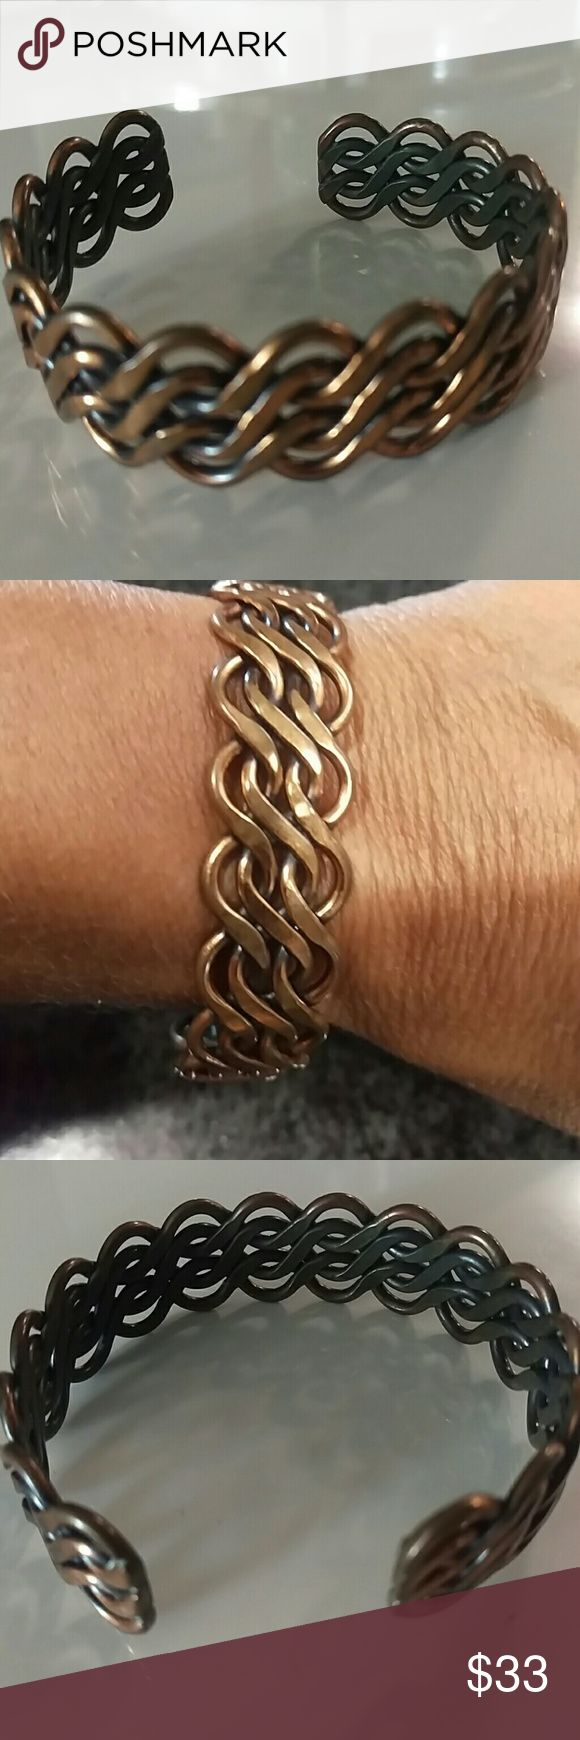 Copper bracelet, one size 10% discount if you add to a bundle! Cute Copper bracelet intricately woven into a wavy design. Squeeze closure, this is a sturdy metal not soft. The outside is a copper color the inside is more of a brass. This is a vintage piece but in very good condition.  Please inspect photos closely Jewelry Bracelets